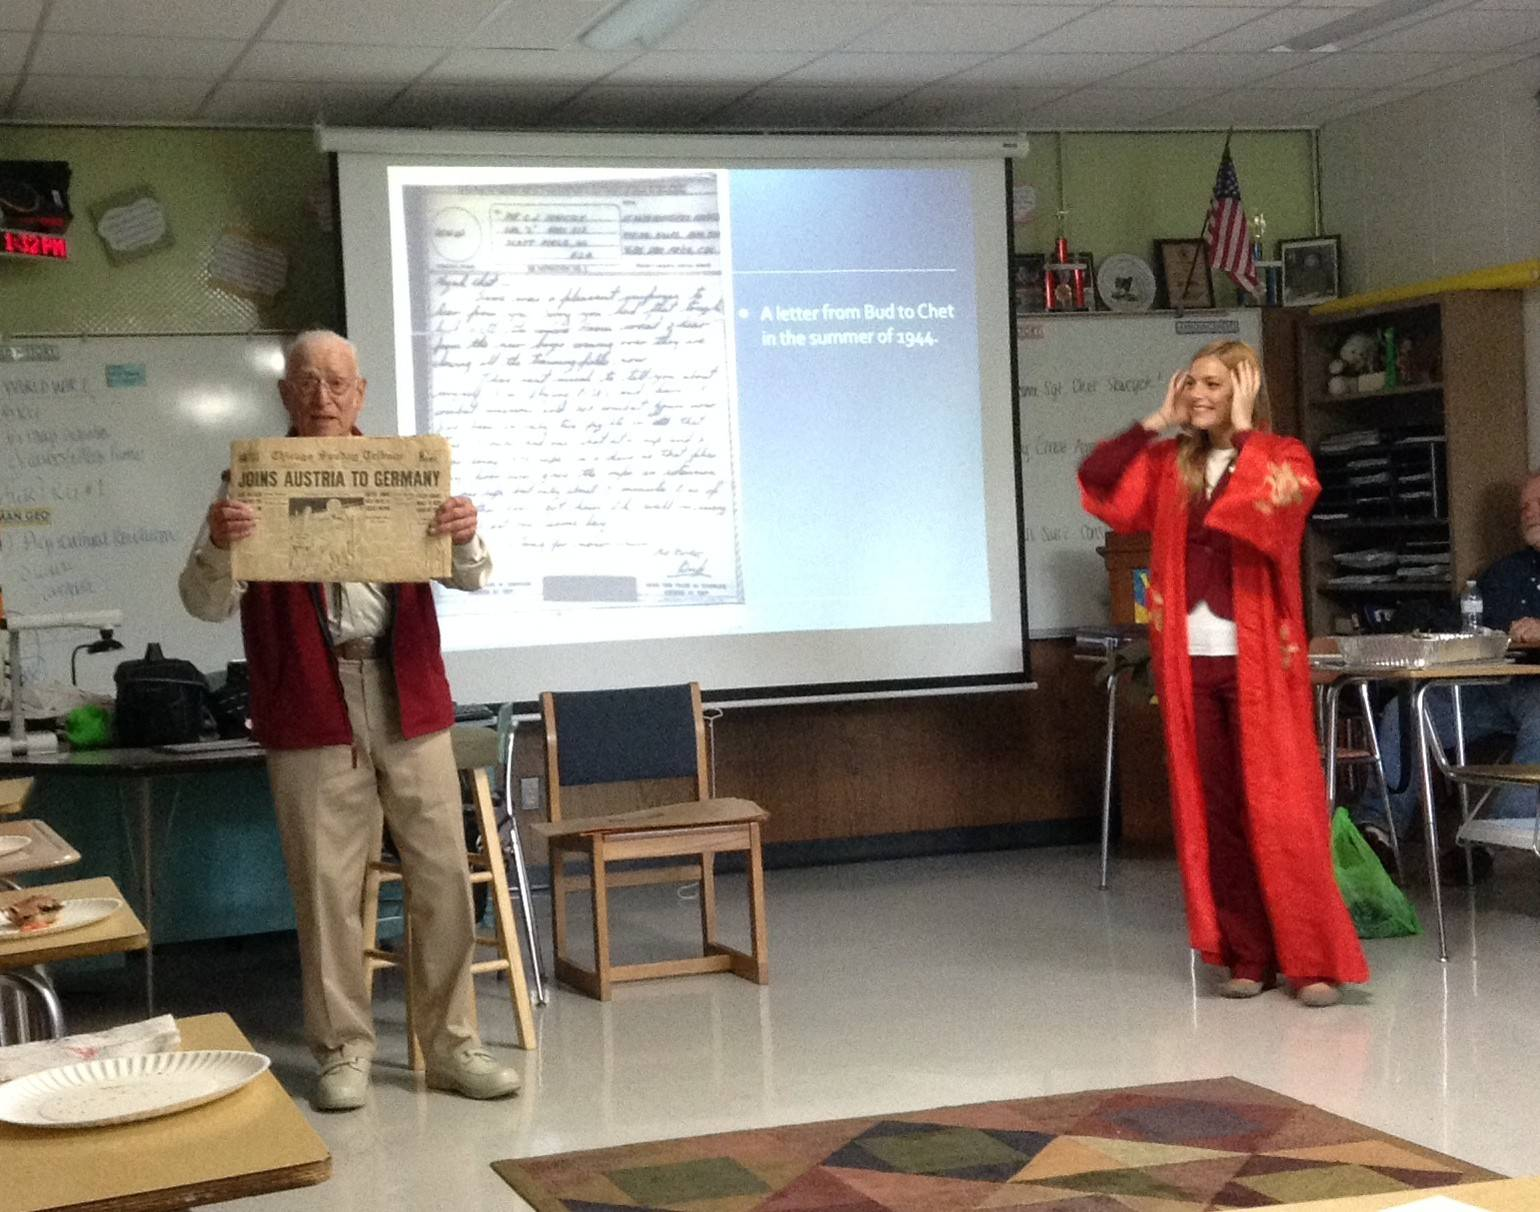 Chester Sewcyck, left, shows a newspaper headline from the World War II era to the Elk Grove High School U.S. History class taught by Stephanie Kezios, right, while visiting with students Tuesday. Sewcyck, an 88-year-old veteran of World War II, was stationed in the Pacific from 1944 through 1946.